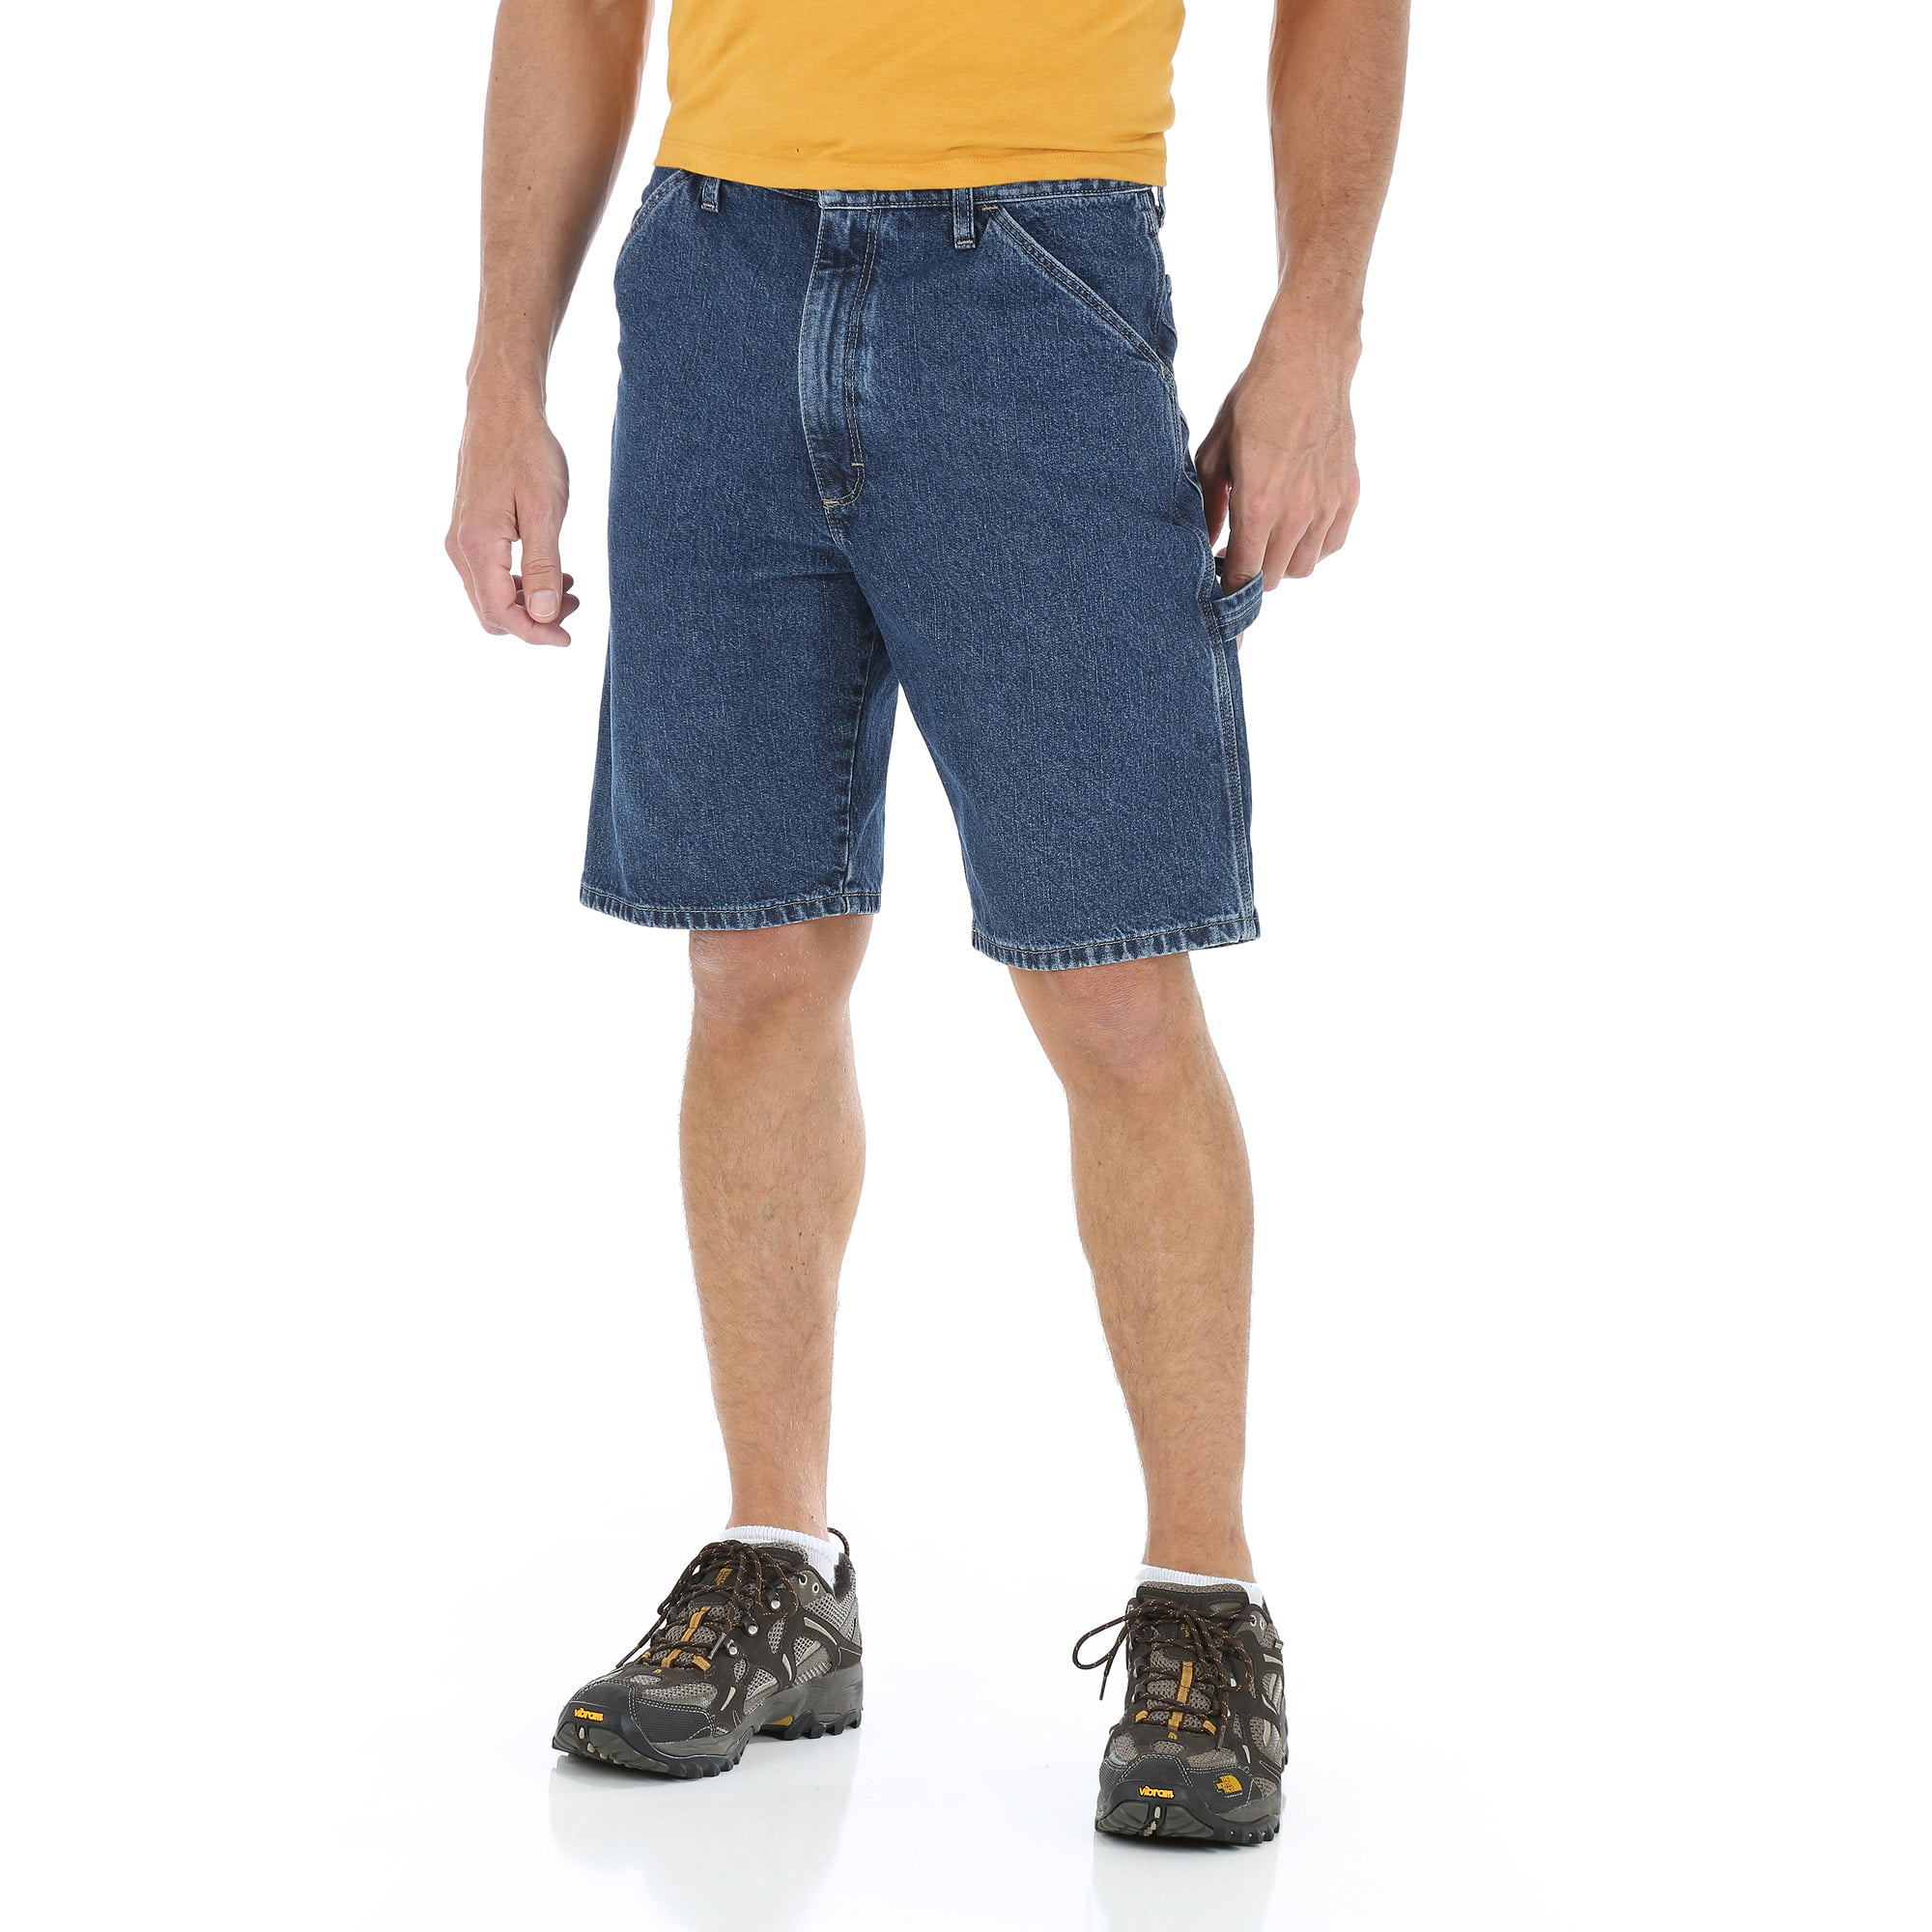 Wrangler - Men's Denim Carpenter Shorts - Walmart.com